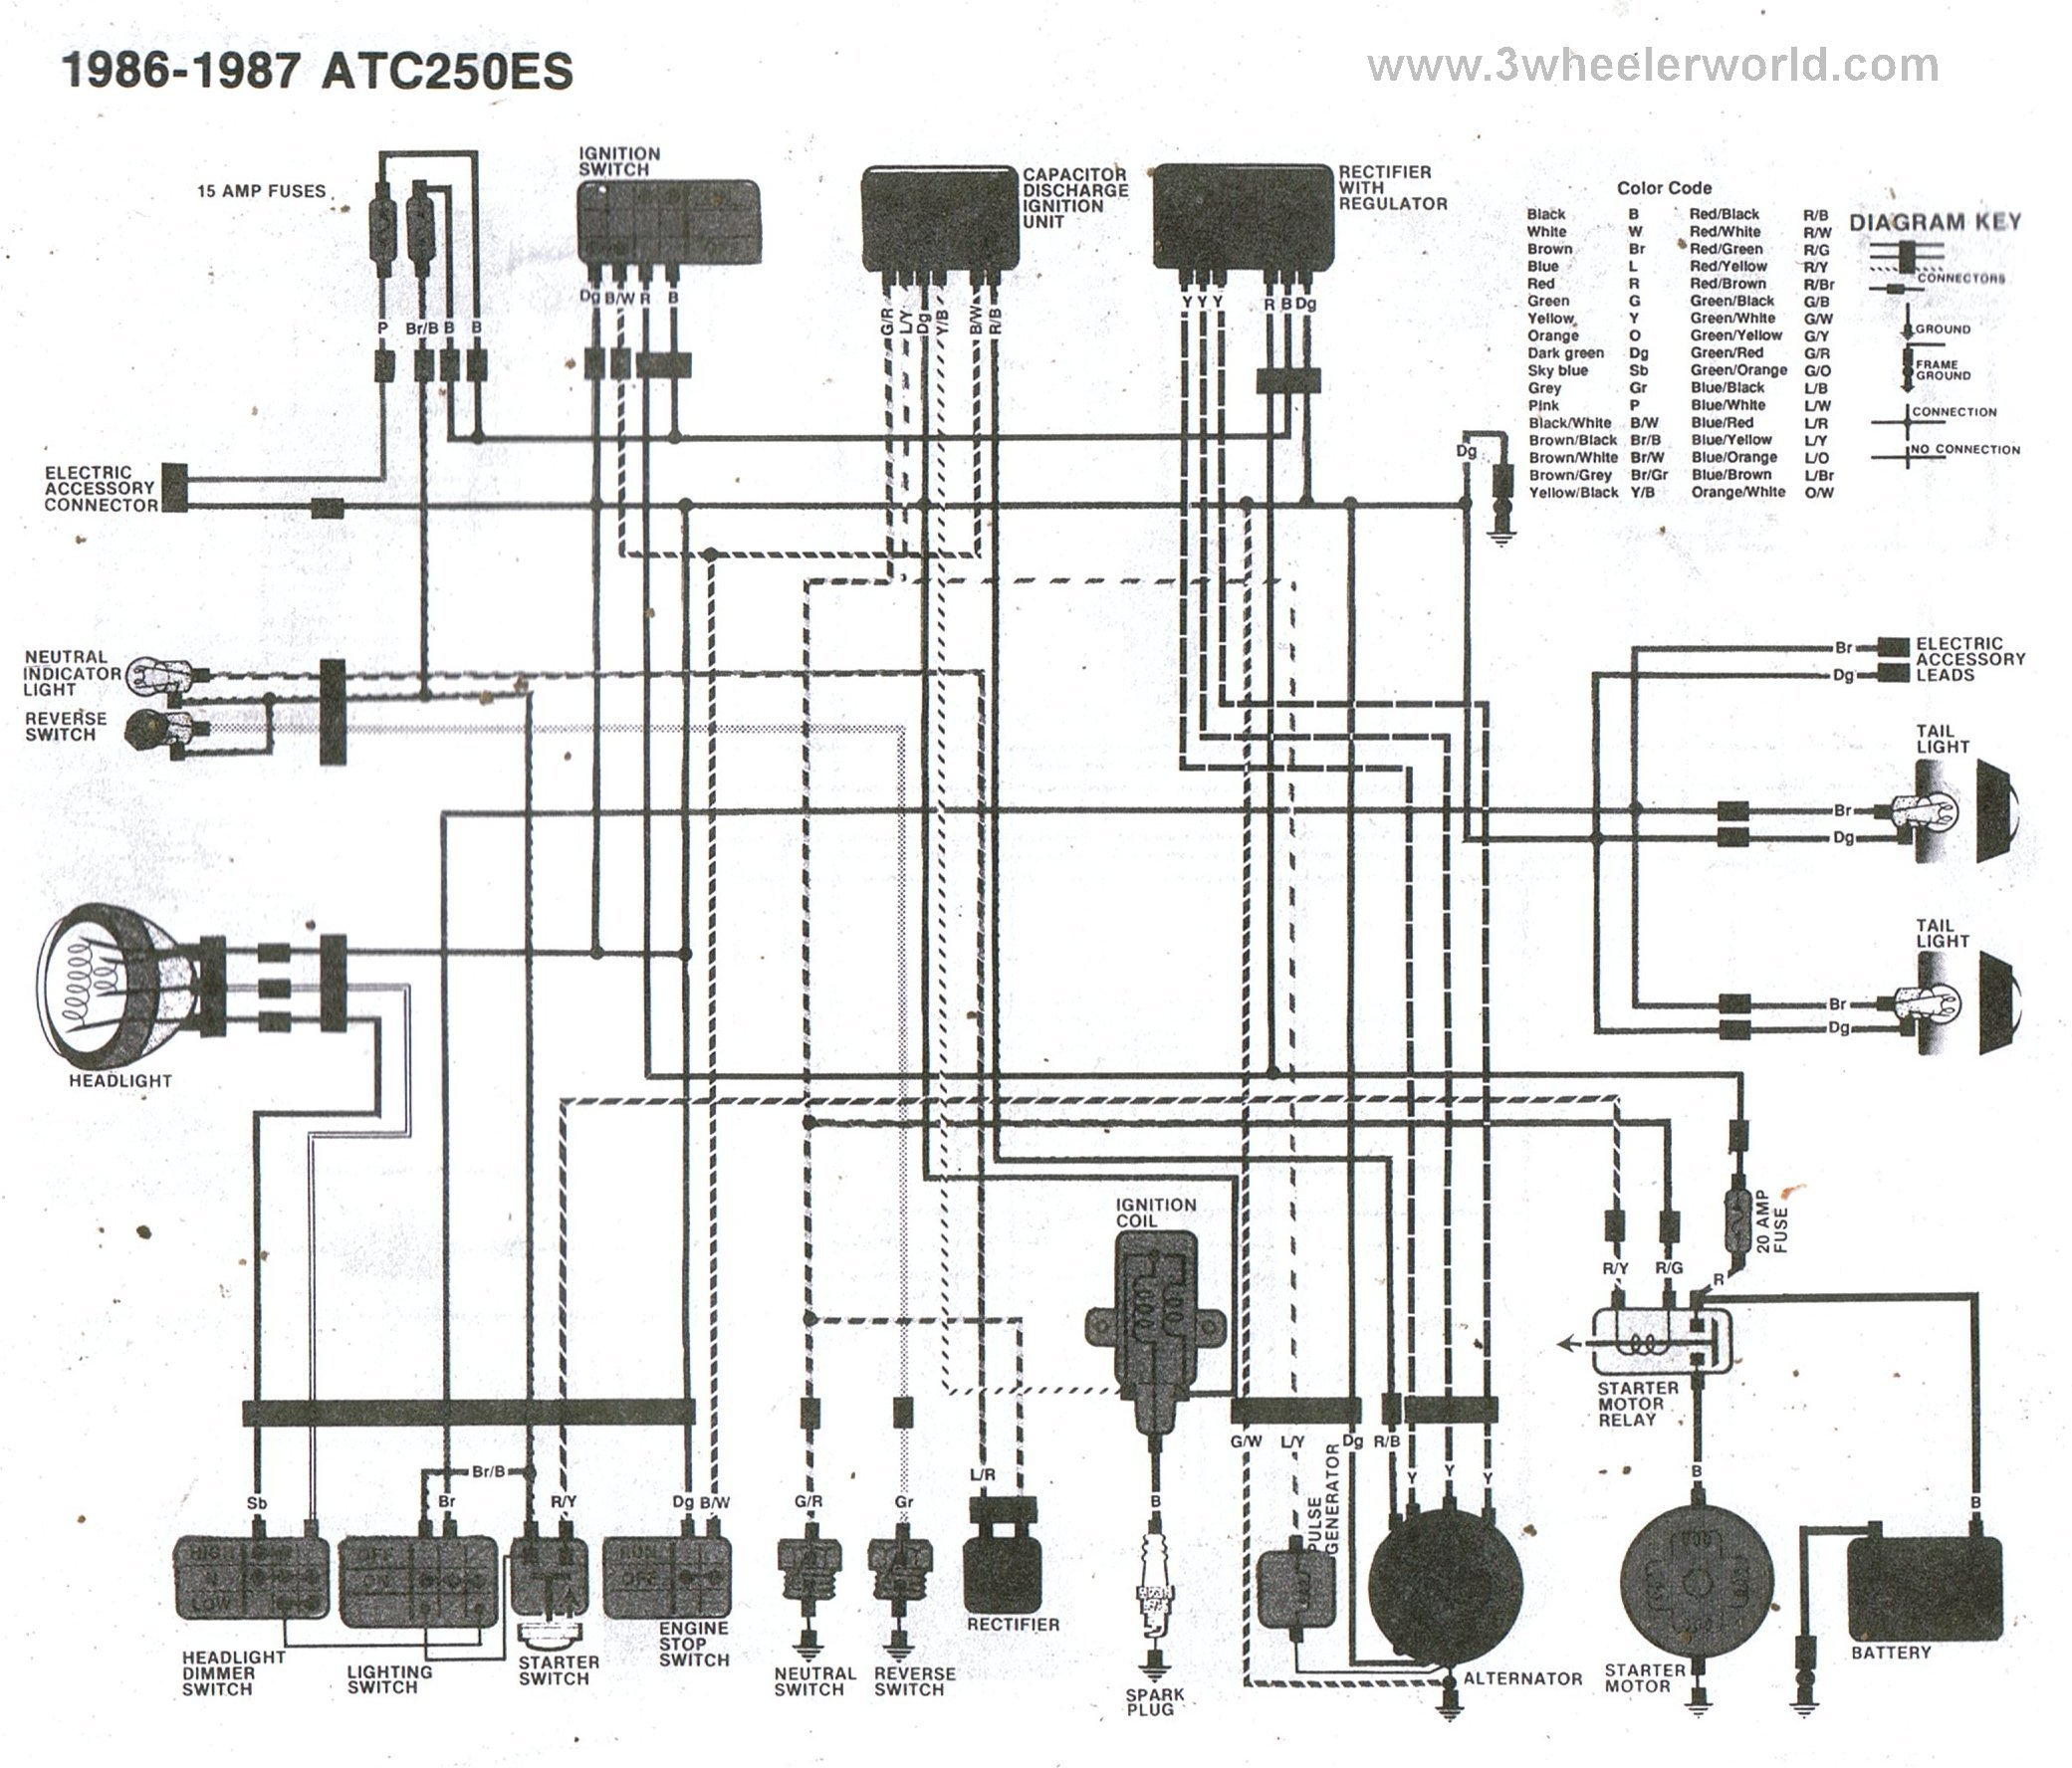 ATC250ESx86Thru87 honda atv 300 wiring diagram honda wiring diagrams instruction trx350 wiring diagram 1987 at pacquiaovsvargaslive.co